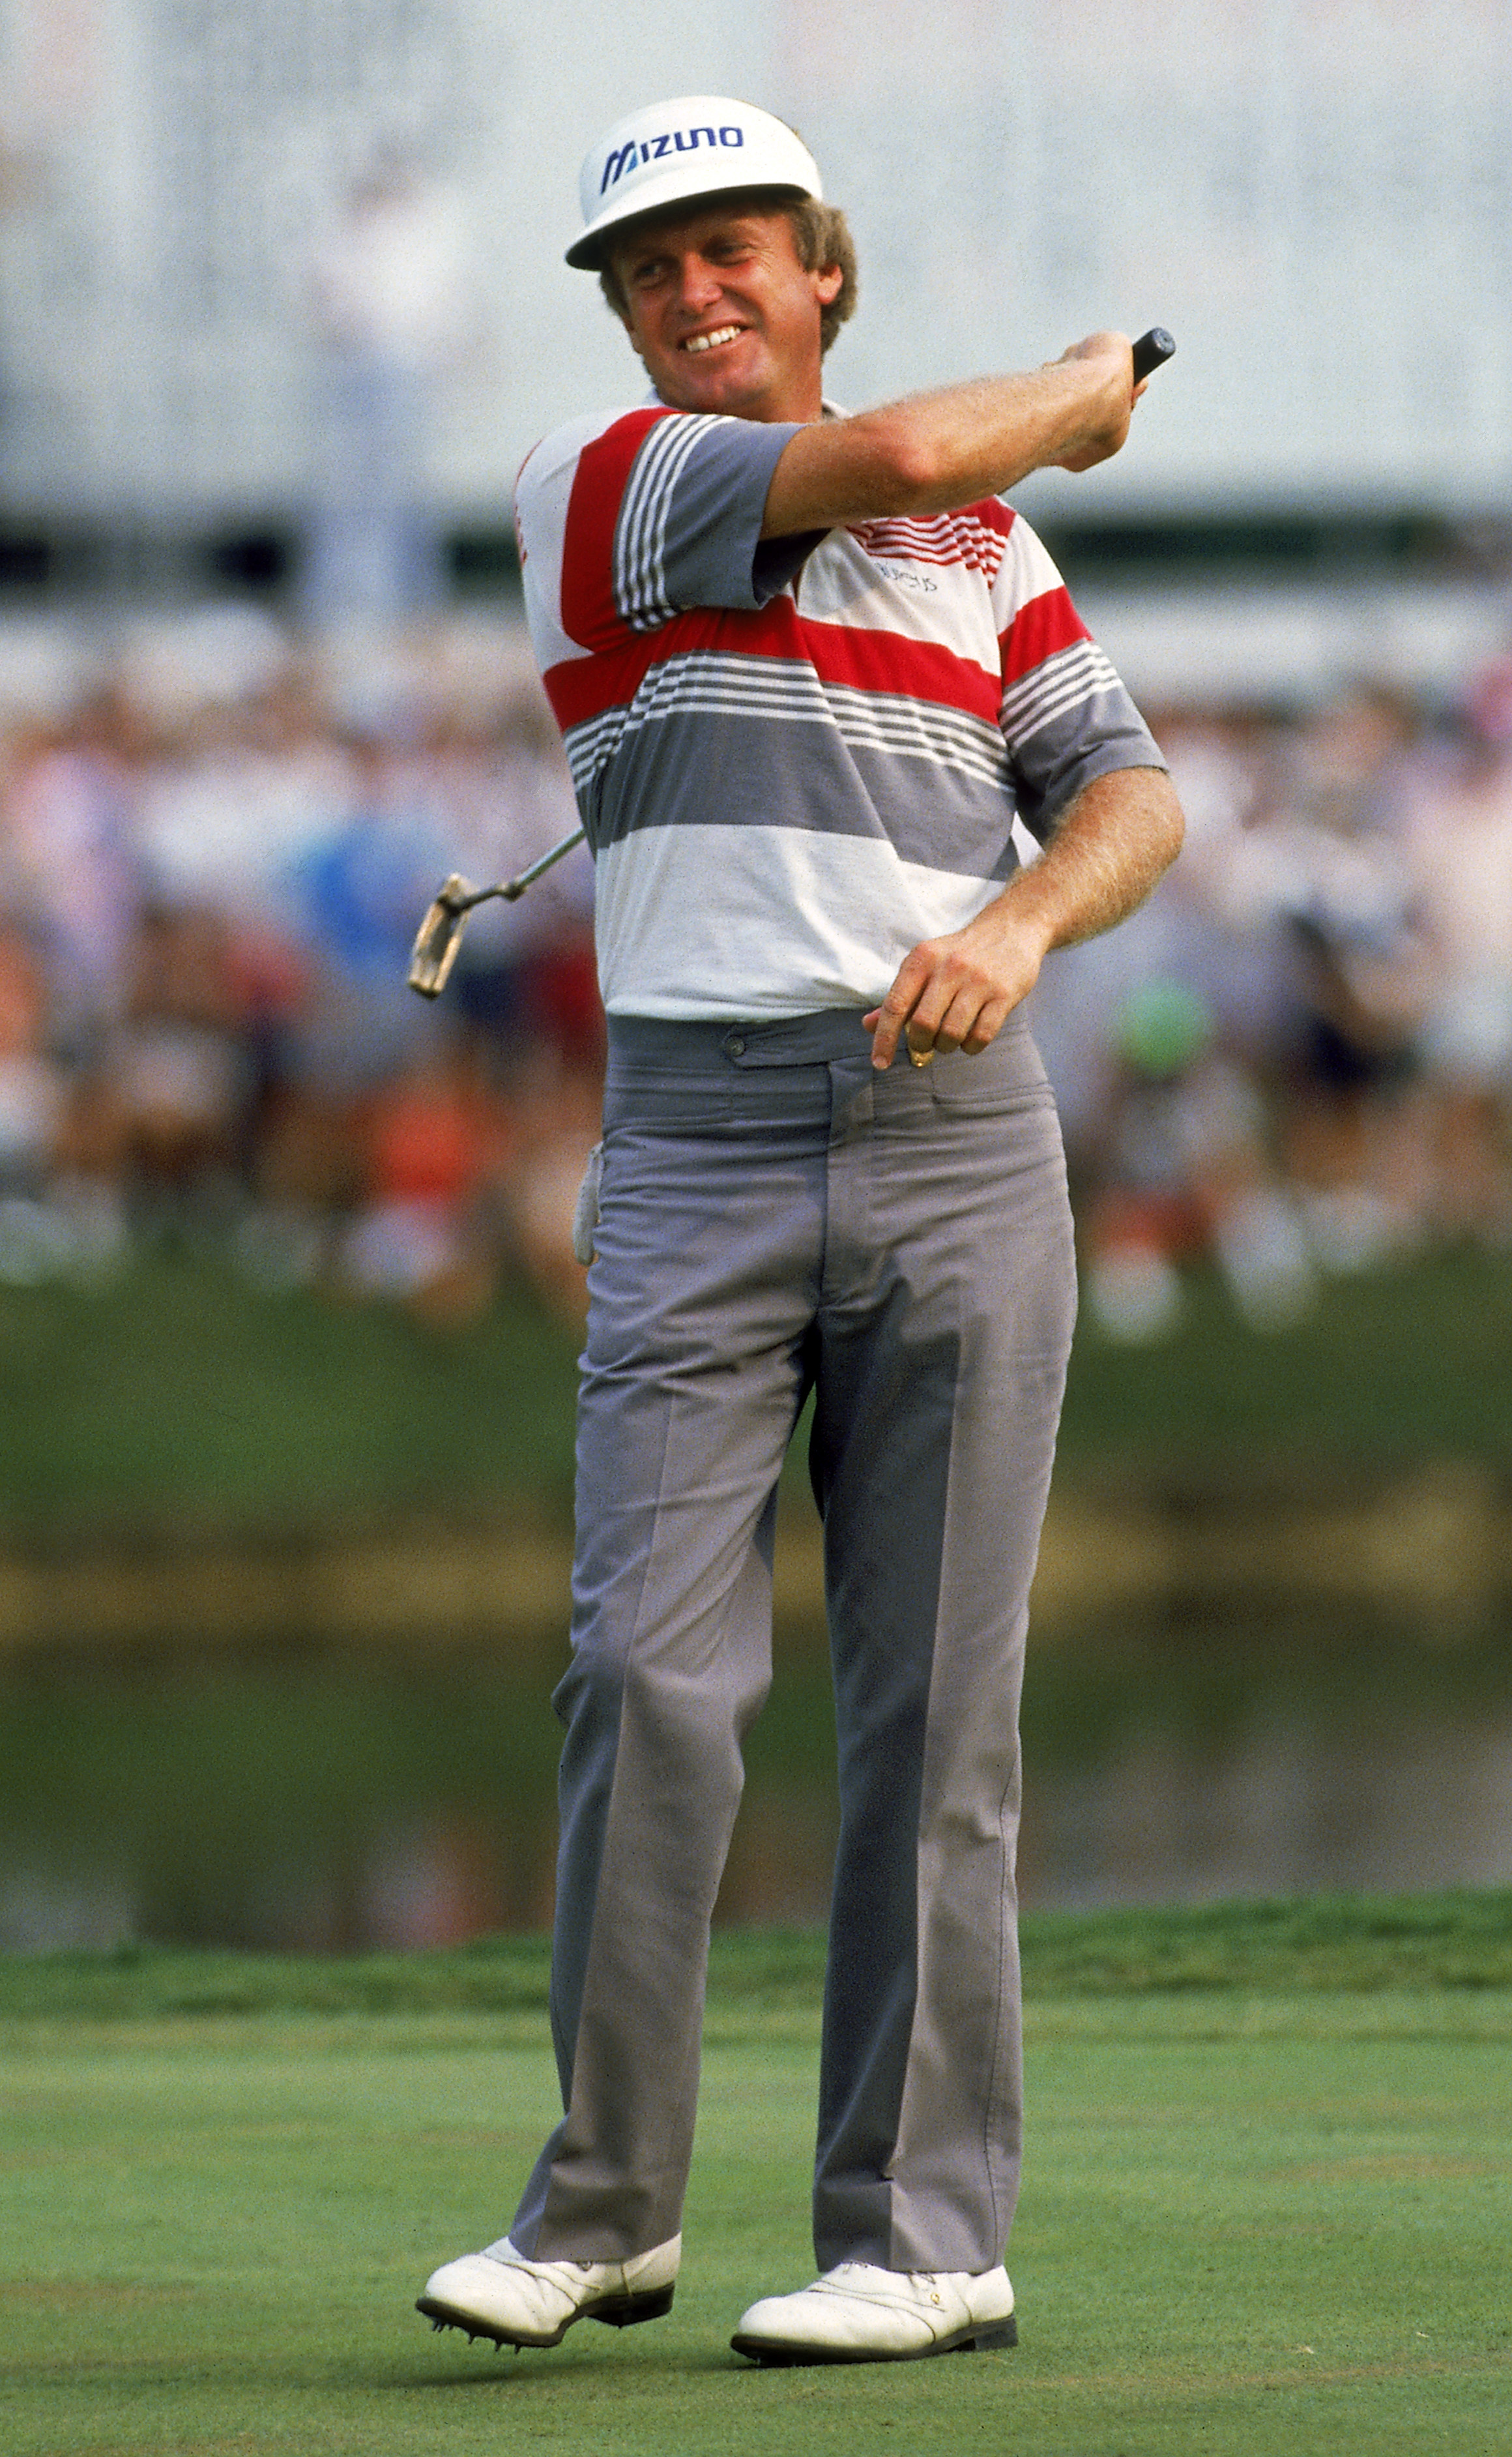 SHOAL CREEK - AUGUST:  Wayne Grady of Australia wins the USPGA Championship at Shoal Creek in Birmingham, Alabama, USA in August 1990. (photo by David Cannon/Getty Images)